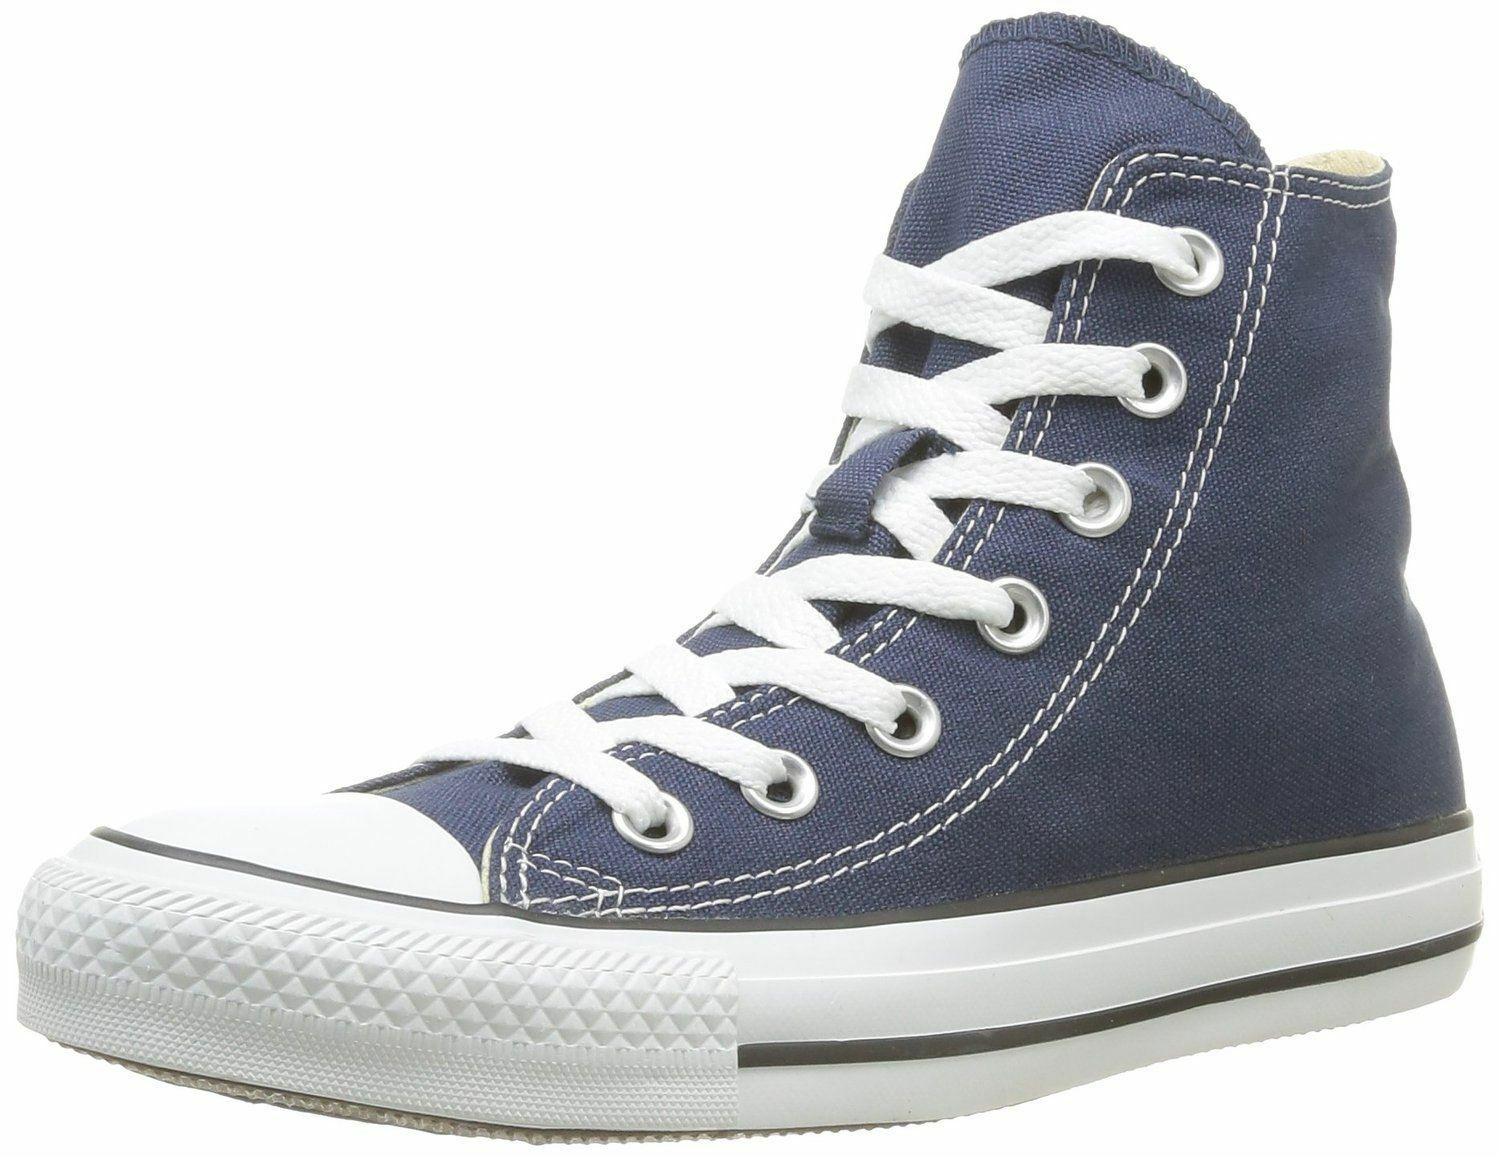 Converse Chuck Taylor All Star Navy WEISS Hi Unisex Trainers Stiefel